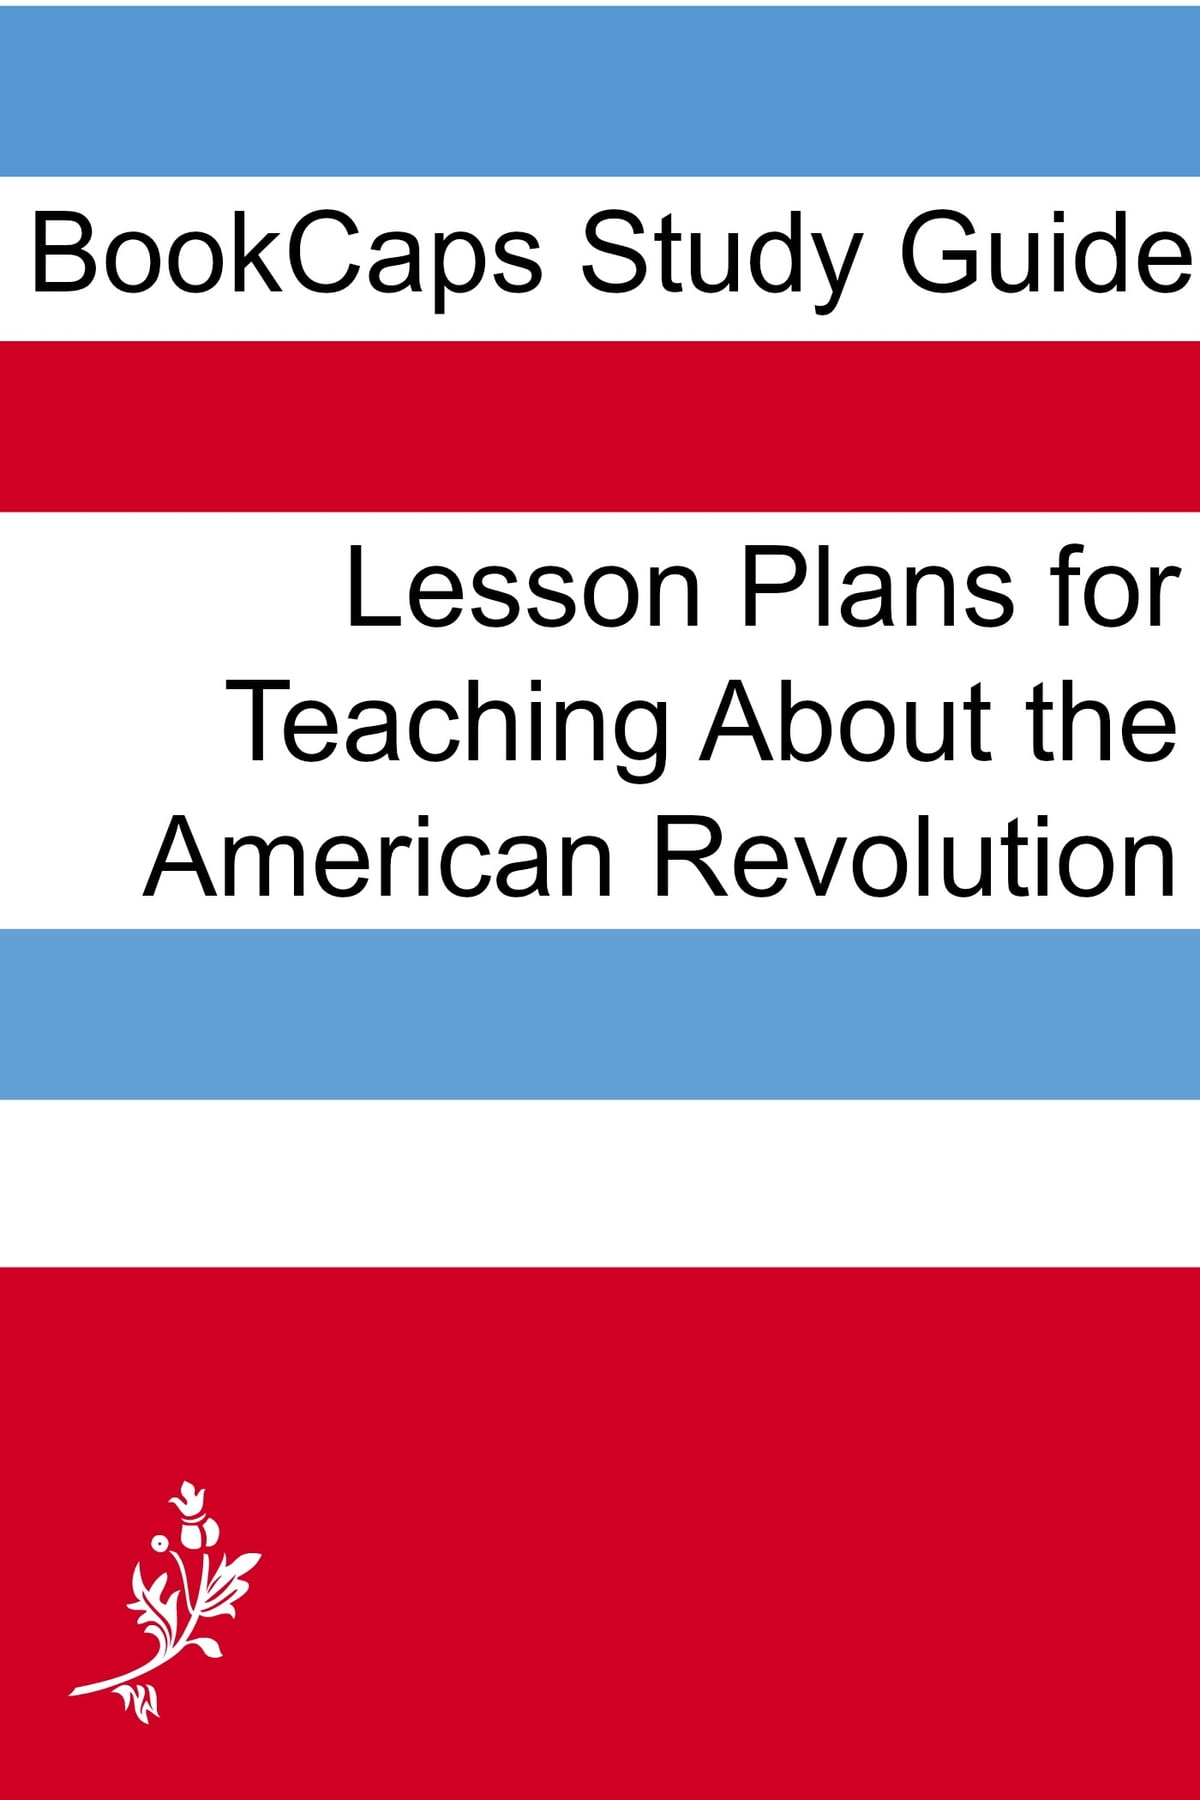 Sample Business School Essays Lesson Plans For Teaching About The American Revolution Ebook By Lessoncaps     Rakuten Kobo How To Write Essay Proposal also High School Experience Essay Lesson Plans For Teaching About The American Revolution Ebook By  Essay About Science